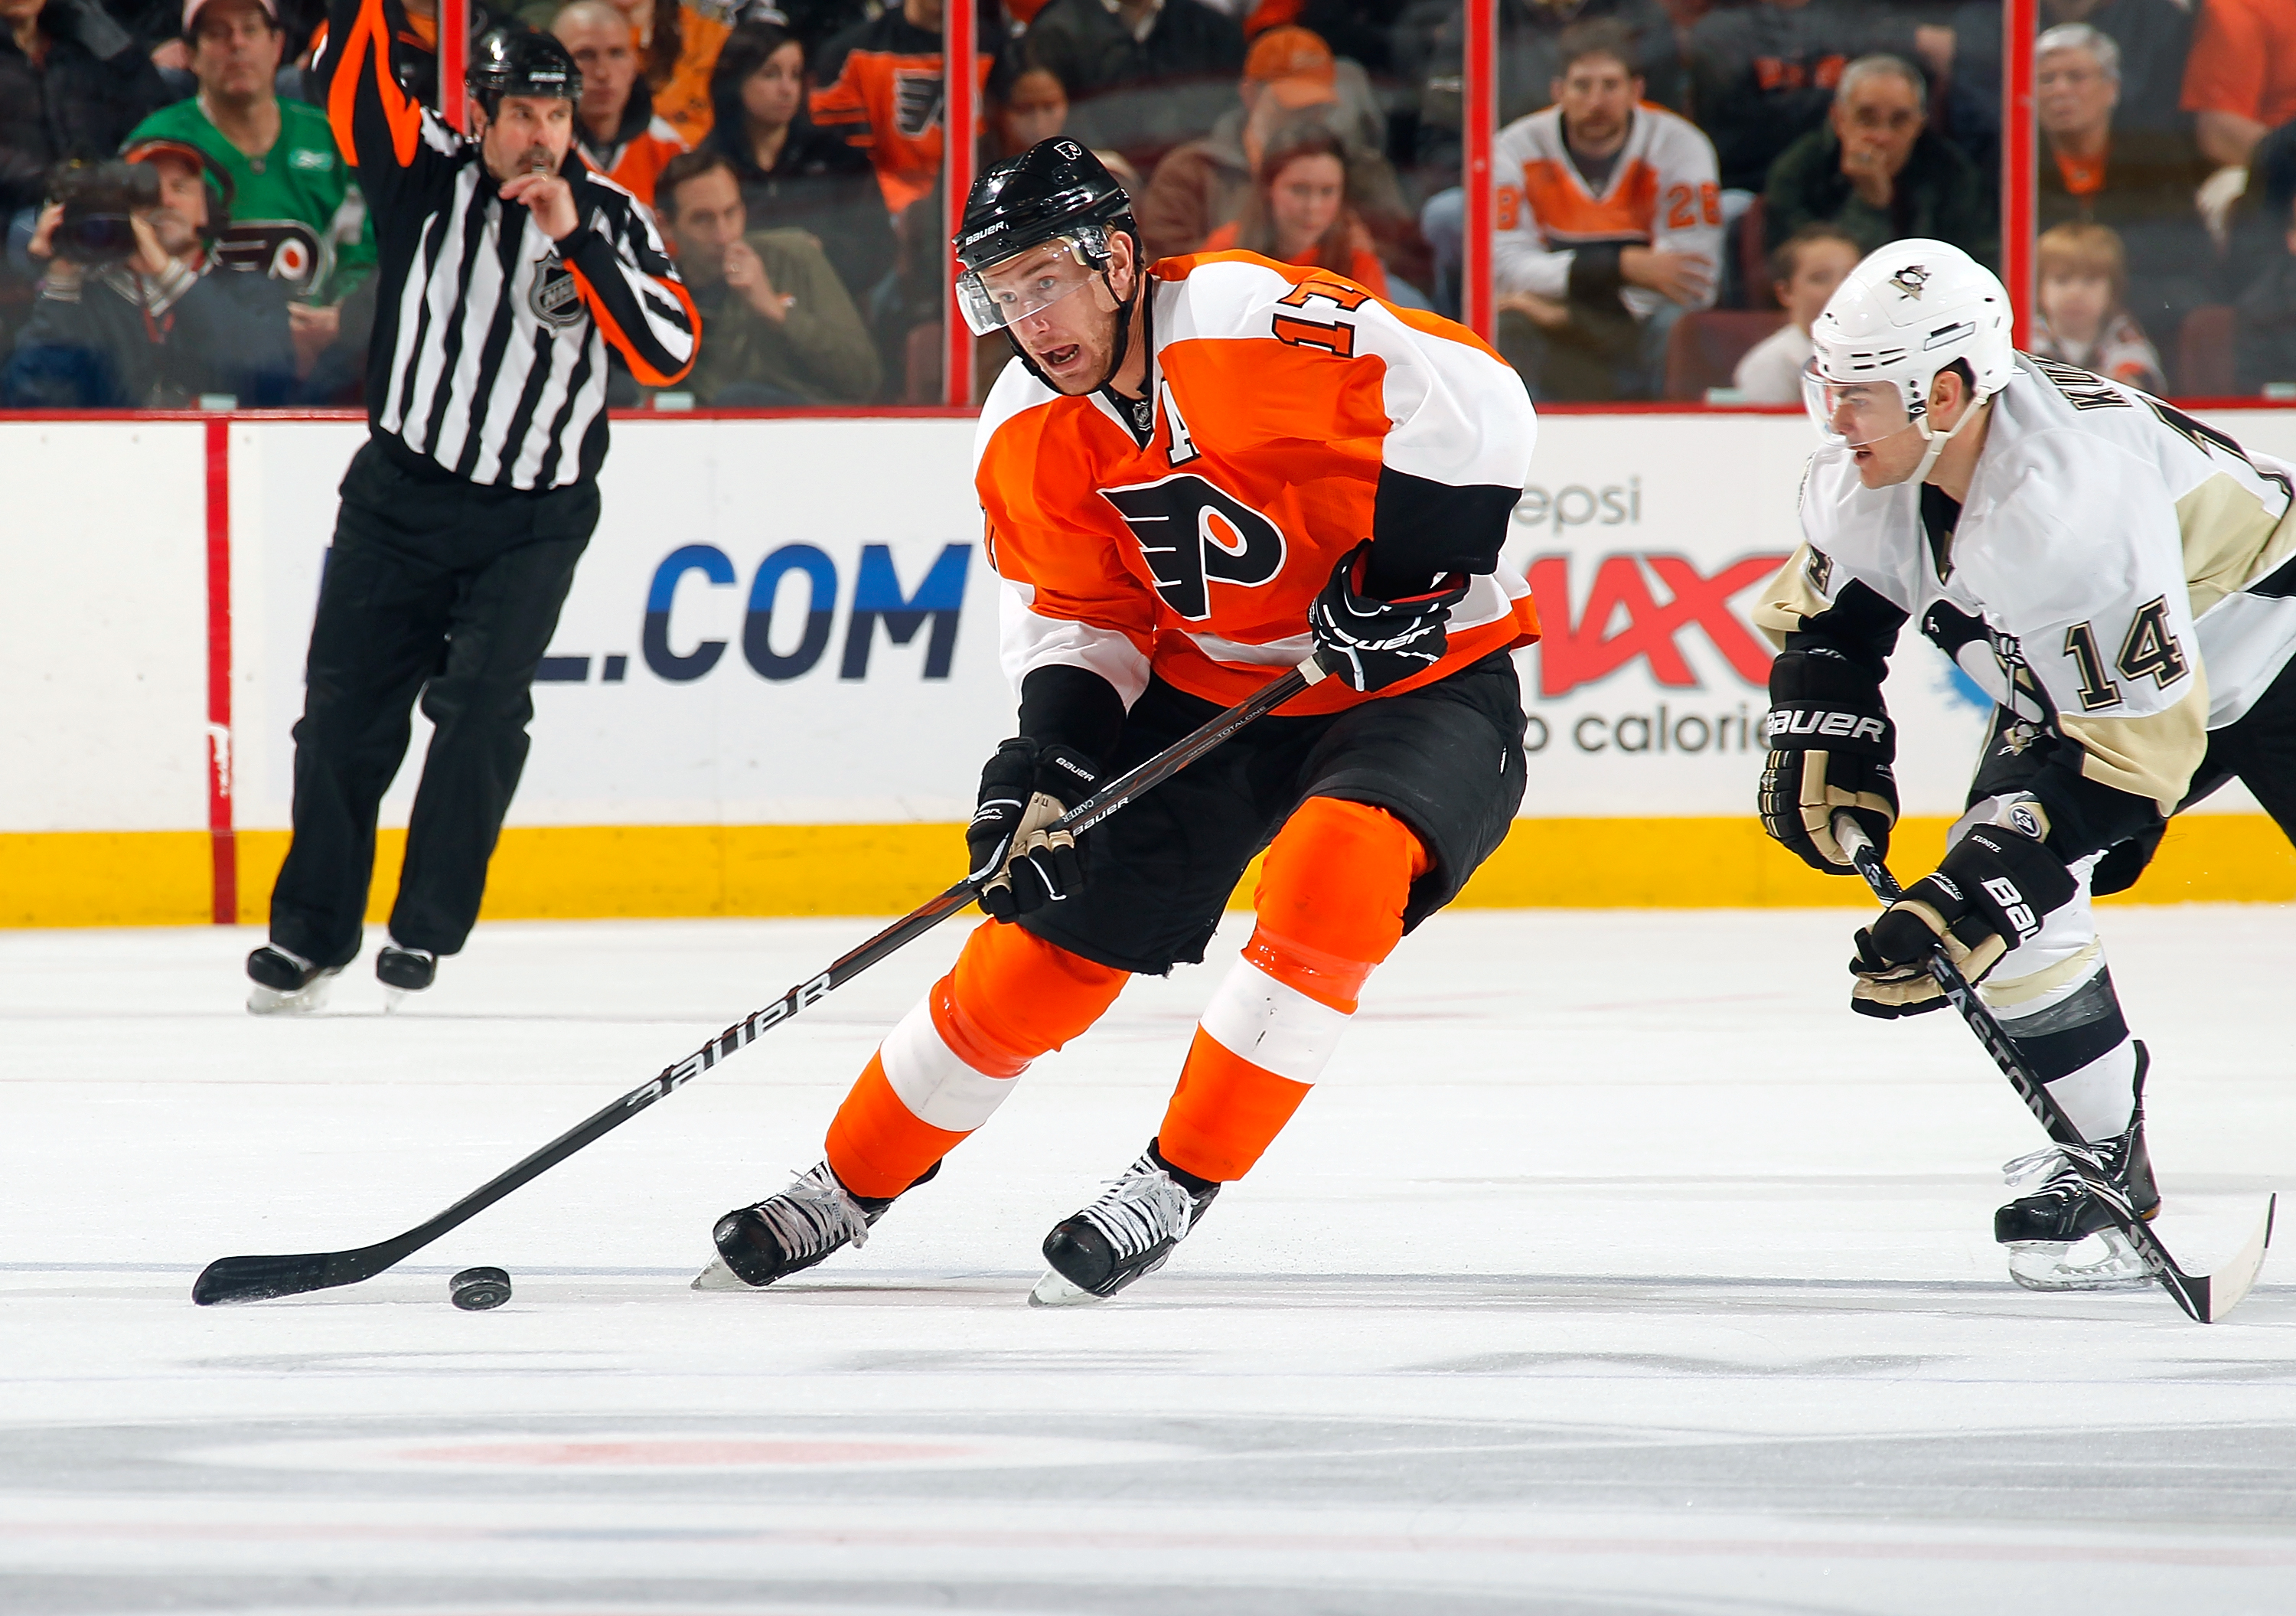 PHILADELPHIA - MARCH 24: Jeff Carter #17 Philadelphia Flyers in action  during a game against the Pittsburgh Penguins on March 24, 2011 at the Wells Fargo Center in Philadelphia, Pennsylvania.  (Photo by Lou Capozzola/Getty Images)